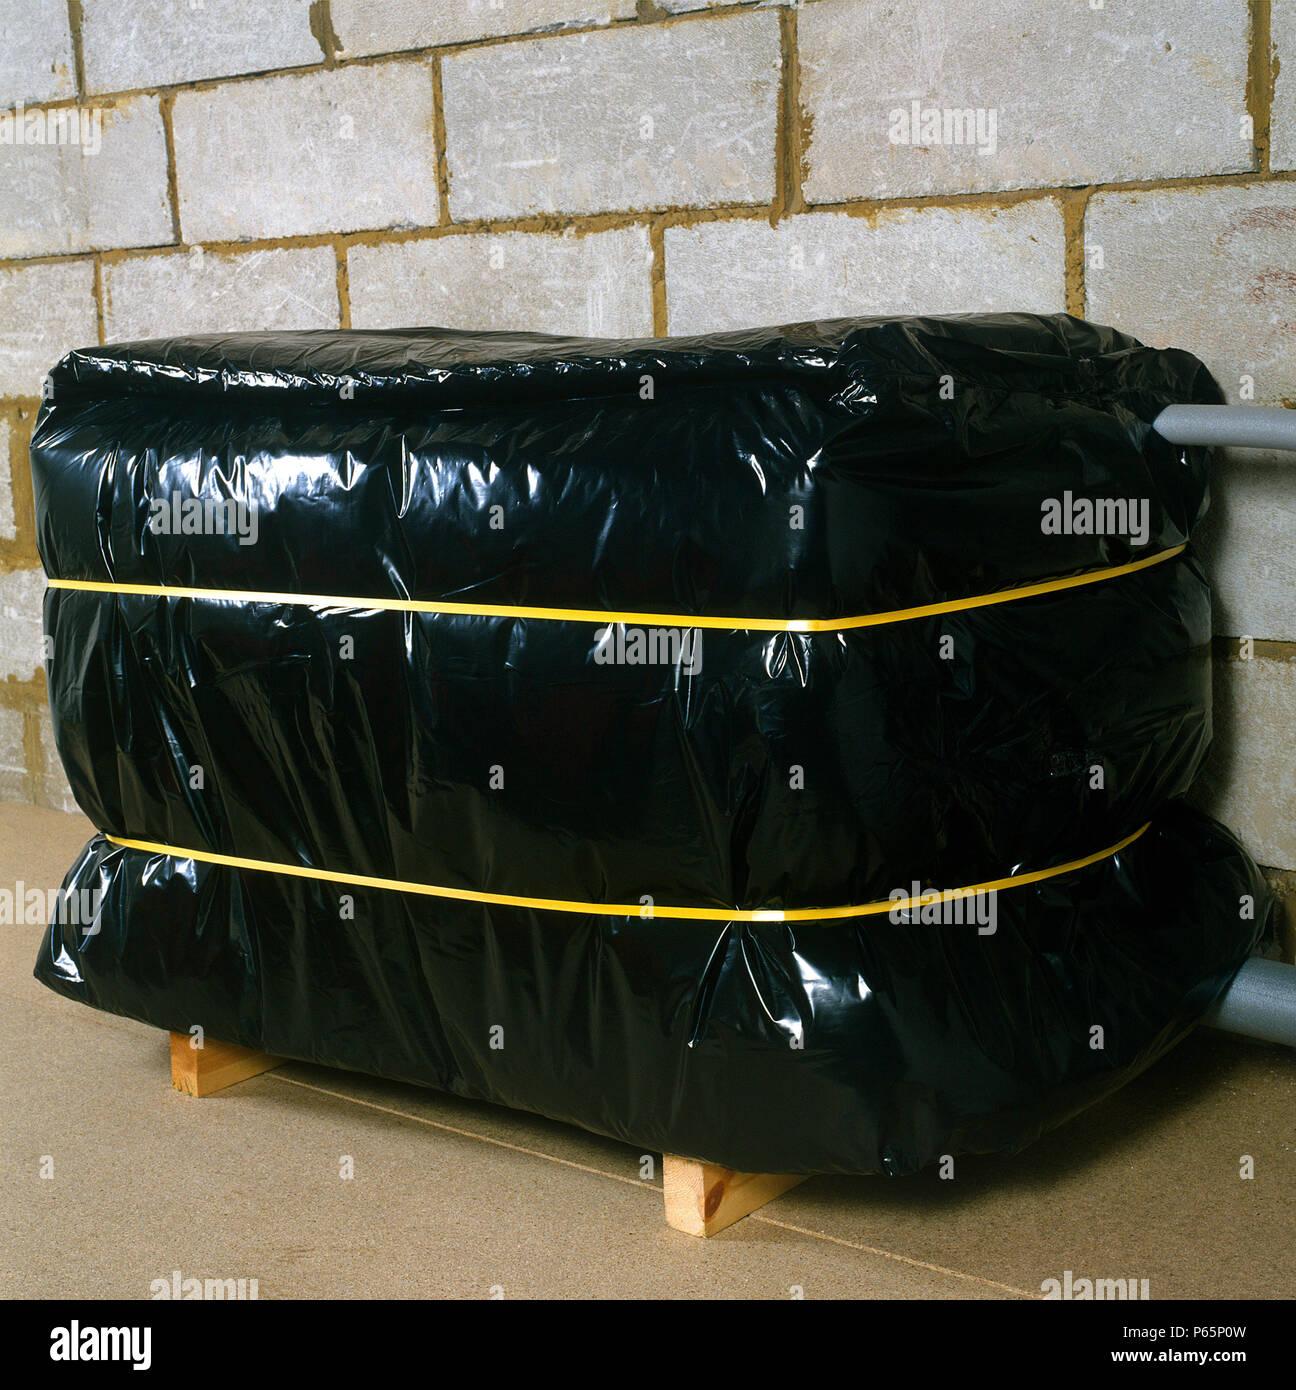 Central Heating Water Tank Stockfotos & Central Heating Water Tank ...